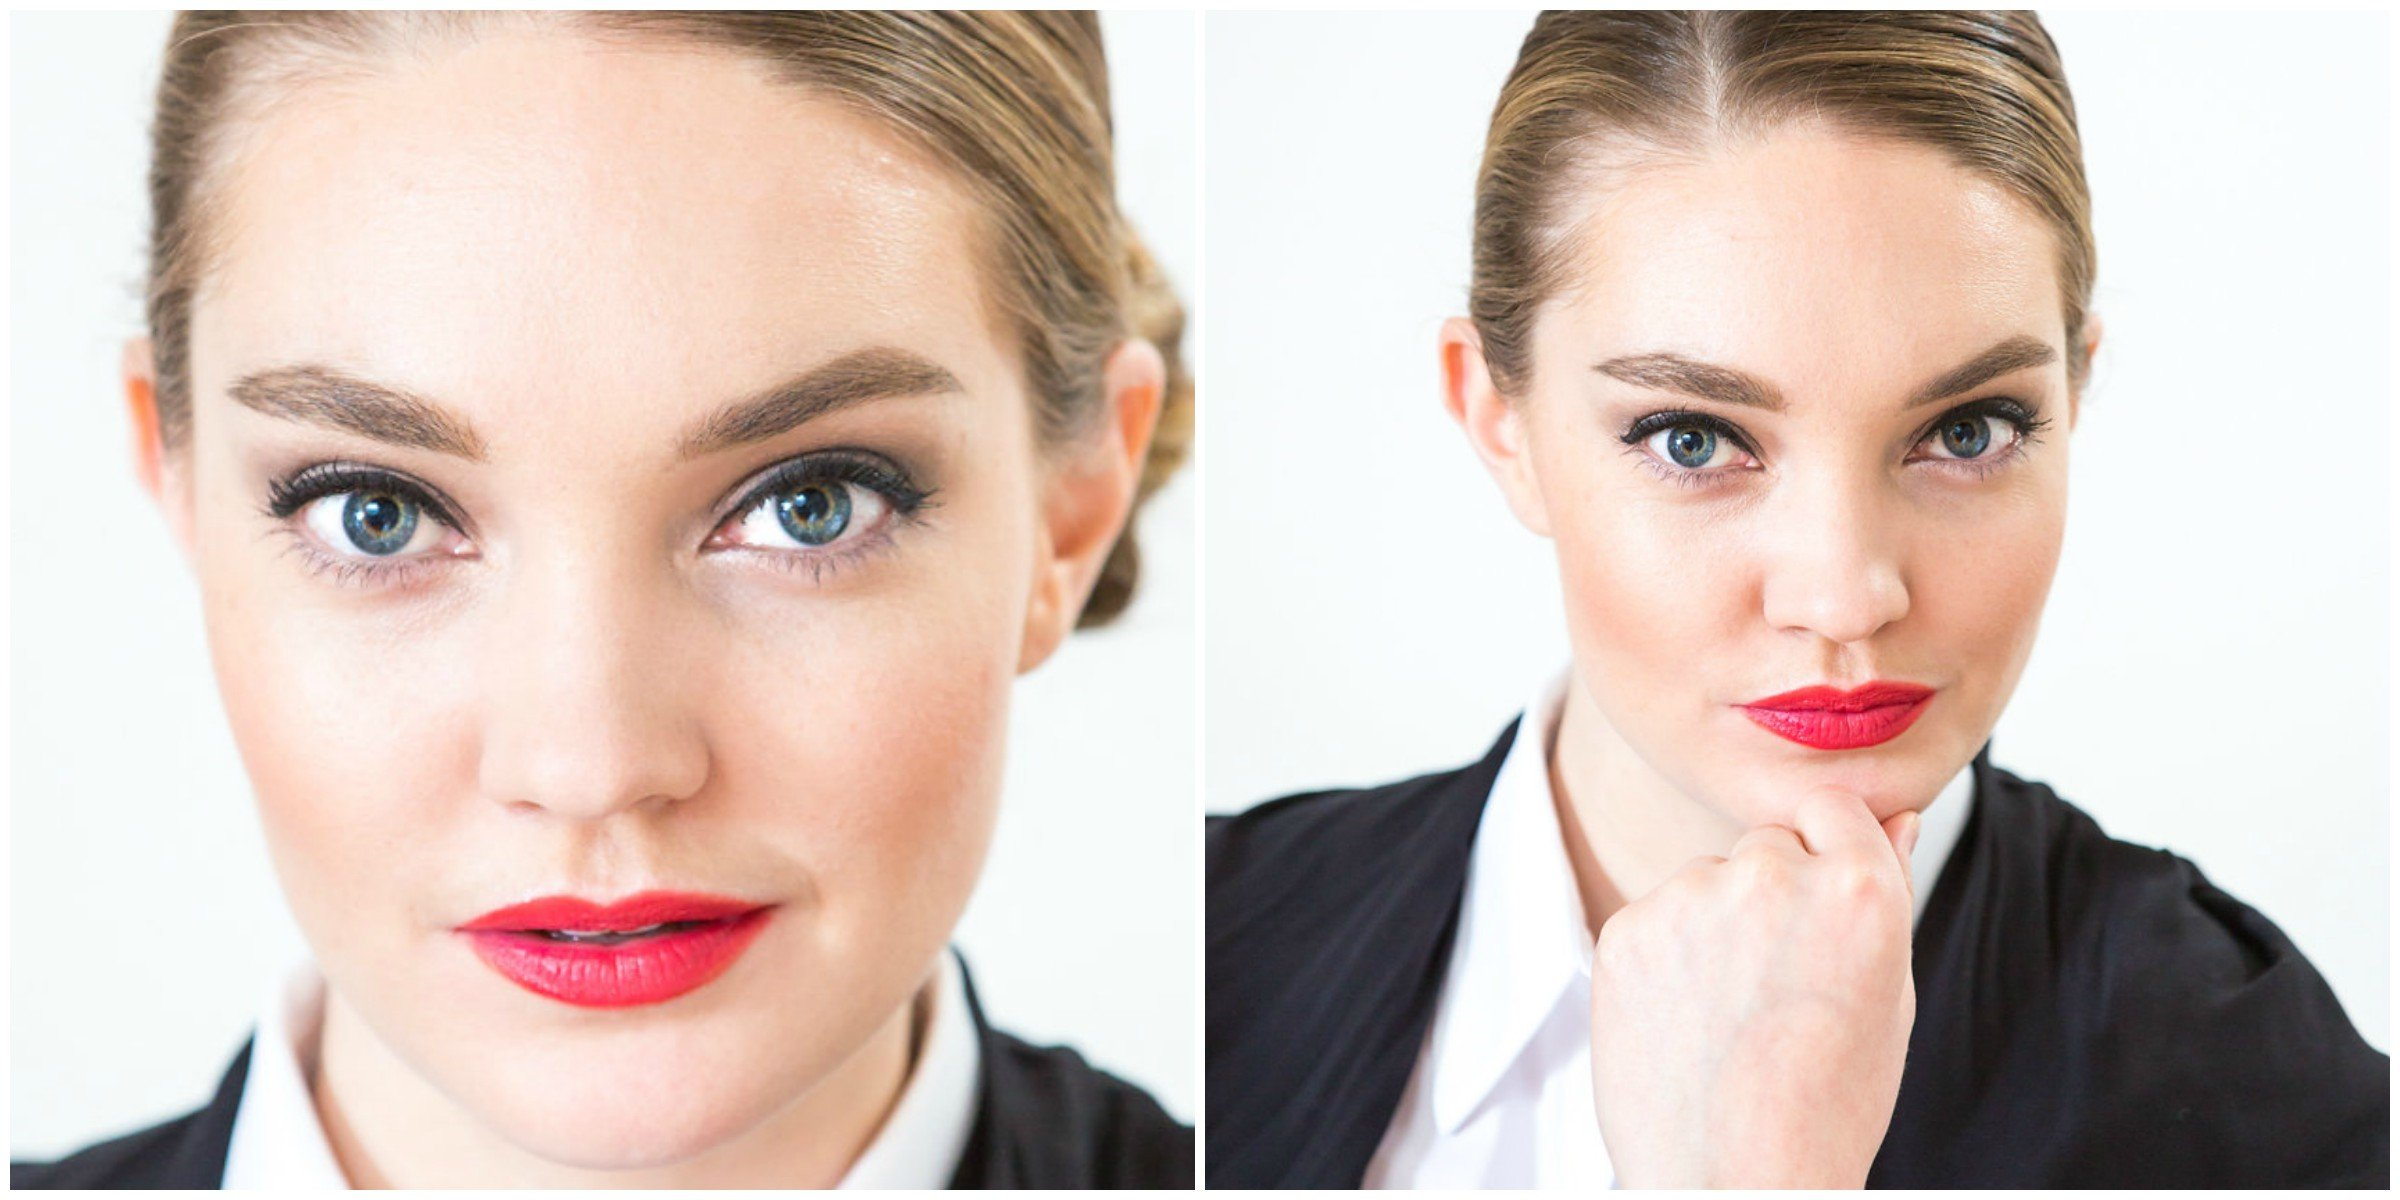 Amped up version of the Professional makeup look for work with red lips and classic grey eye shadow makeup created by Klava Z Ottawa makeup artist